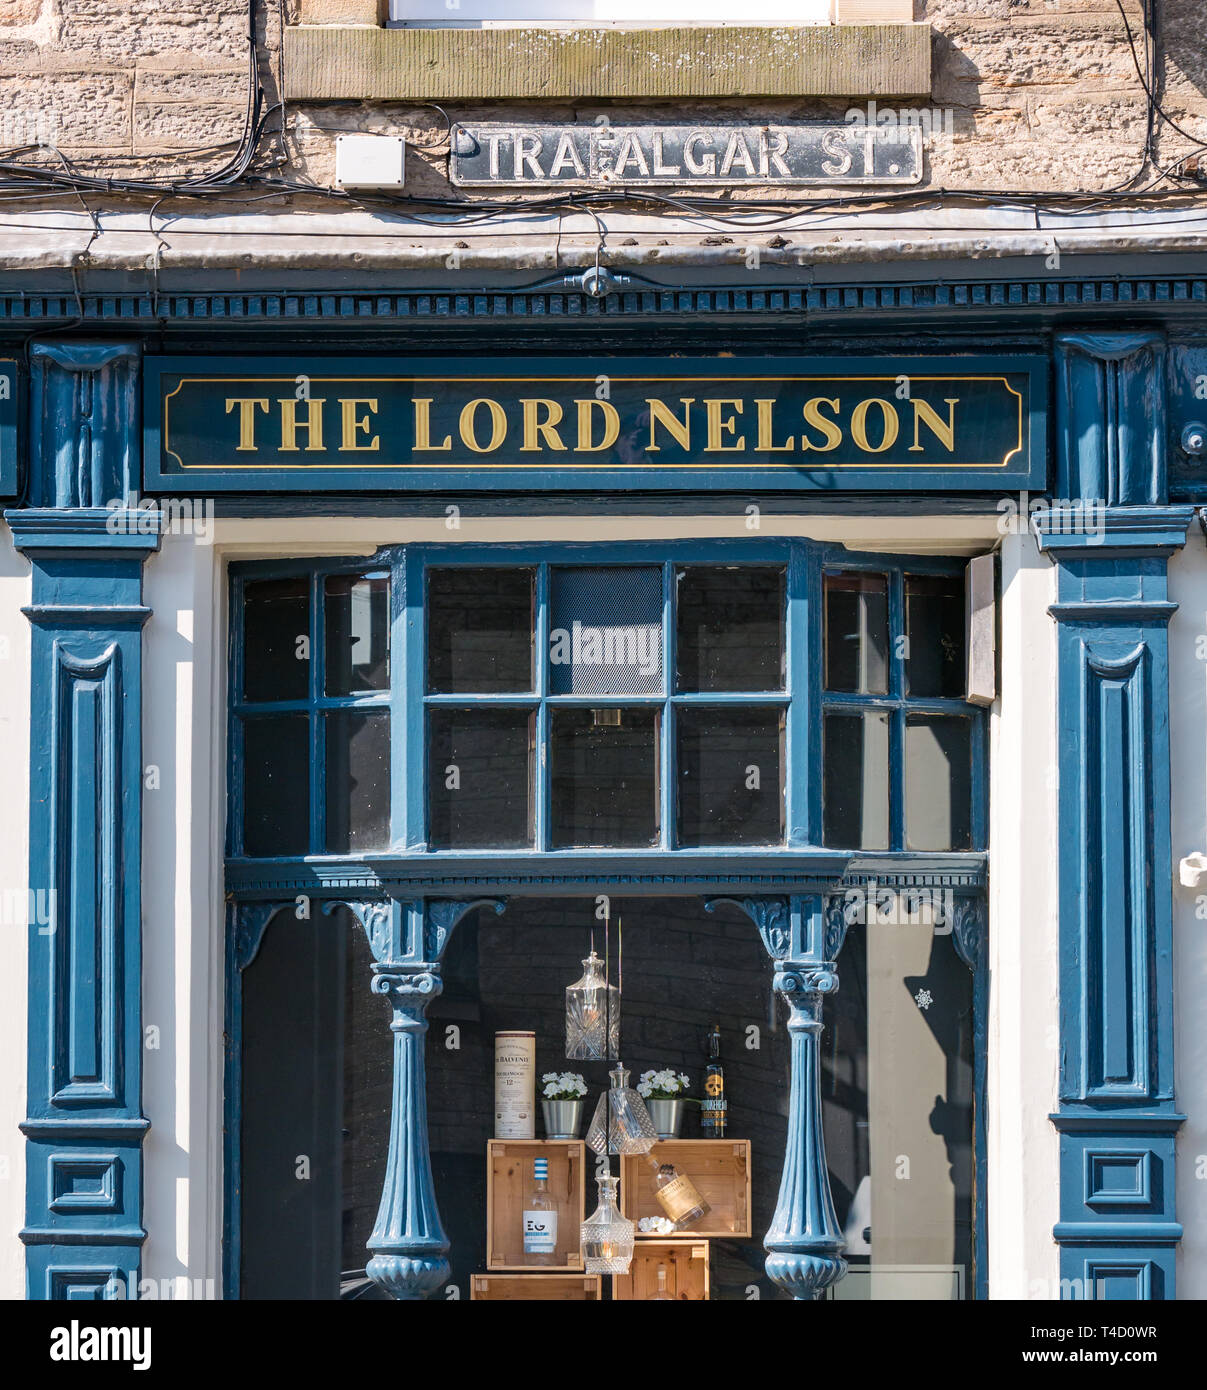 front-of-the-lord-nelson-pub-trafalgar-s